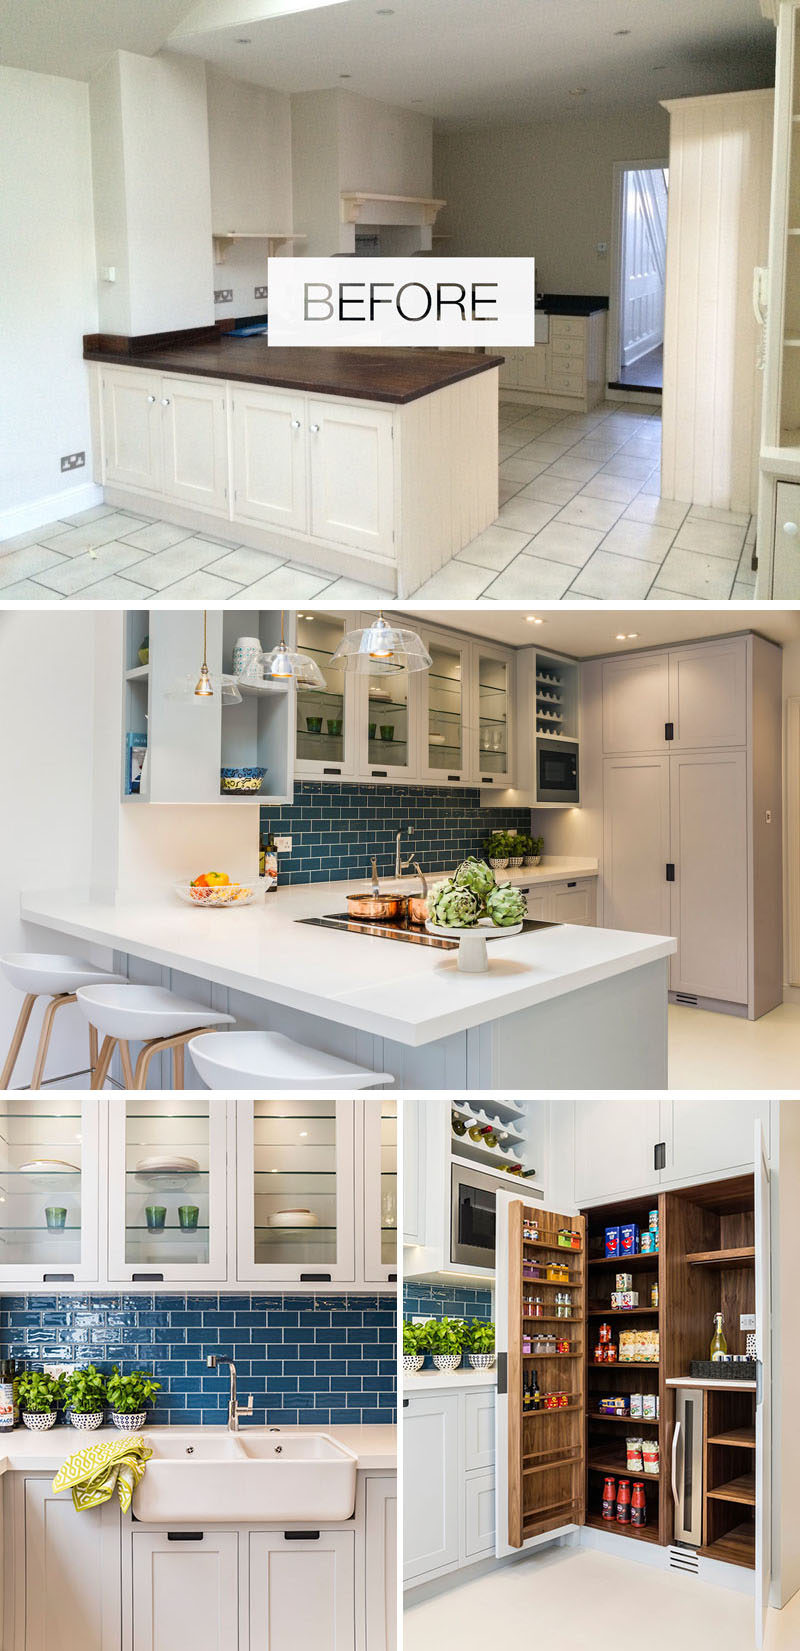 In this kitchen renovation, bespoke light grey cabinets are combined with a deep blue tile backsplash and a white countertop. A large pantry includes space for a wine fridge and tea/coffee making space. #KitchenRenovation #ContemporaryKitchen